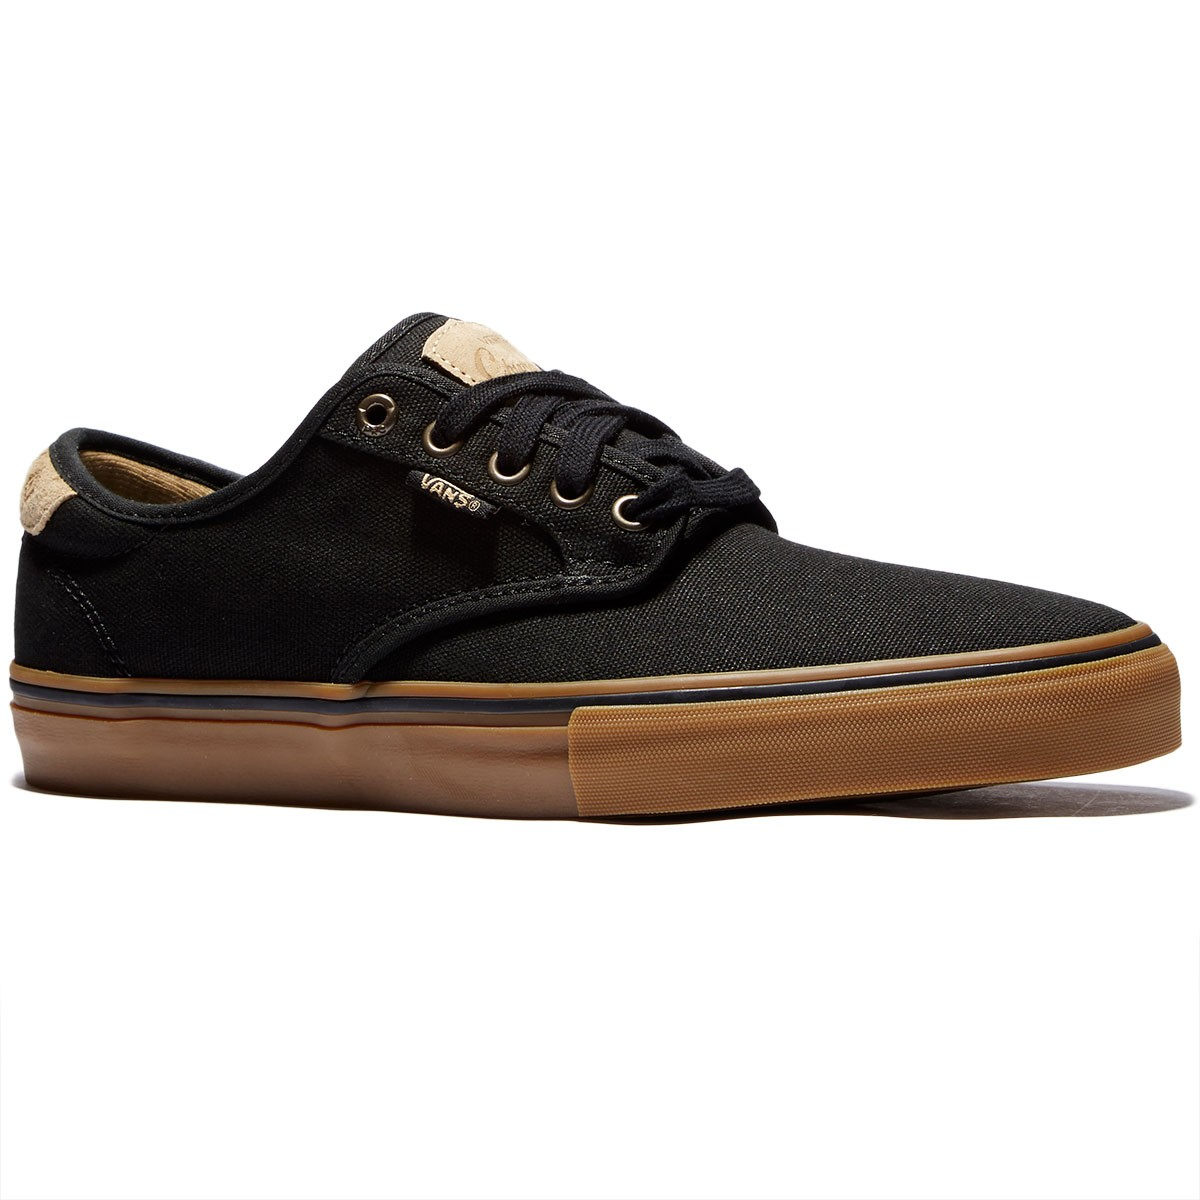 Vans Chima Ferguson Pro Shoes - Native Black/Gum - 8.0